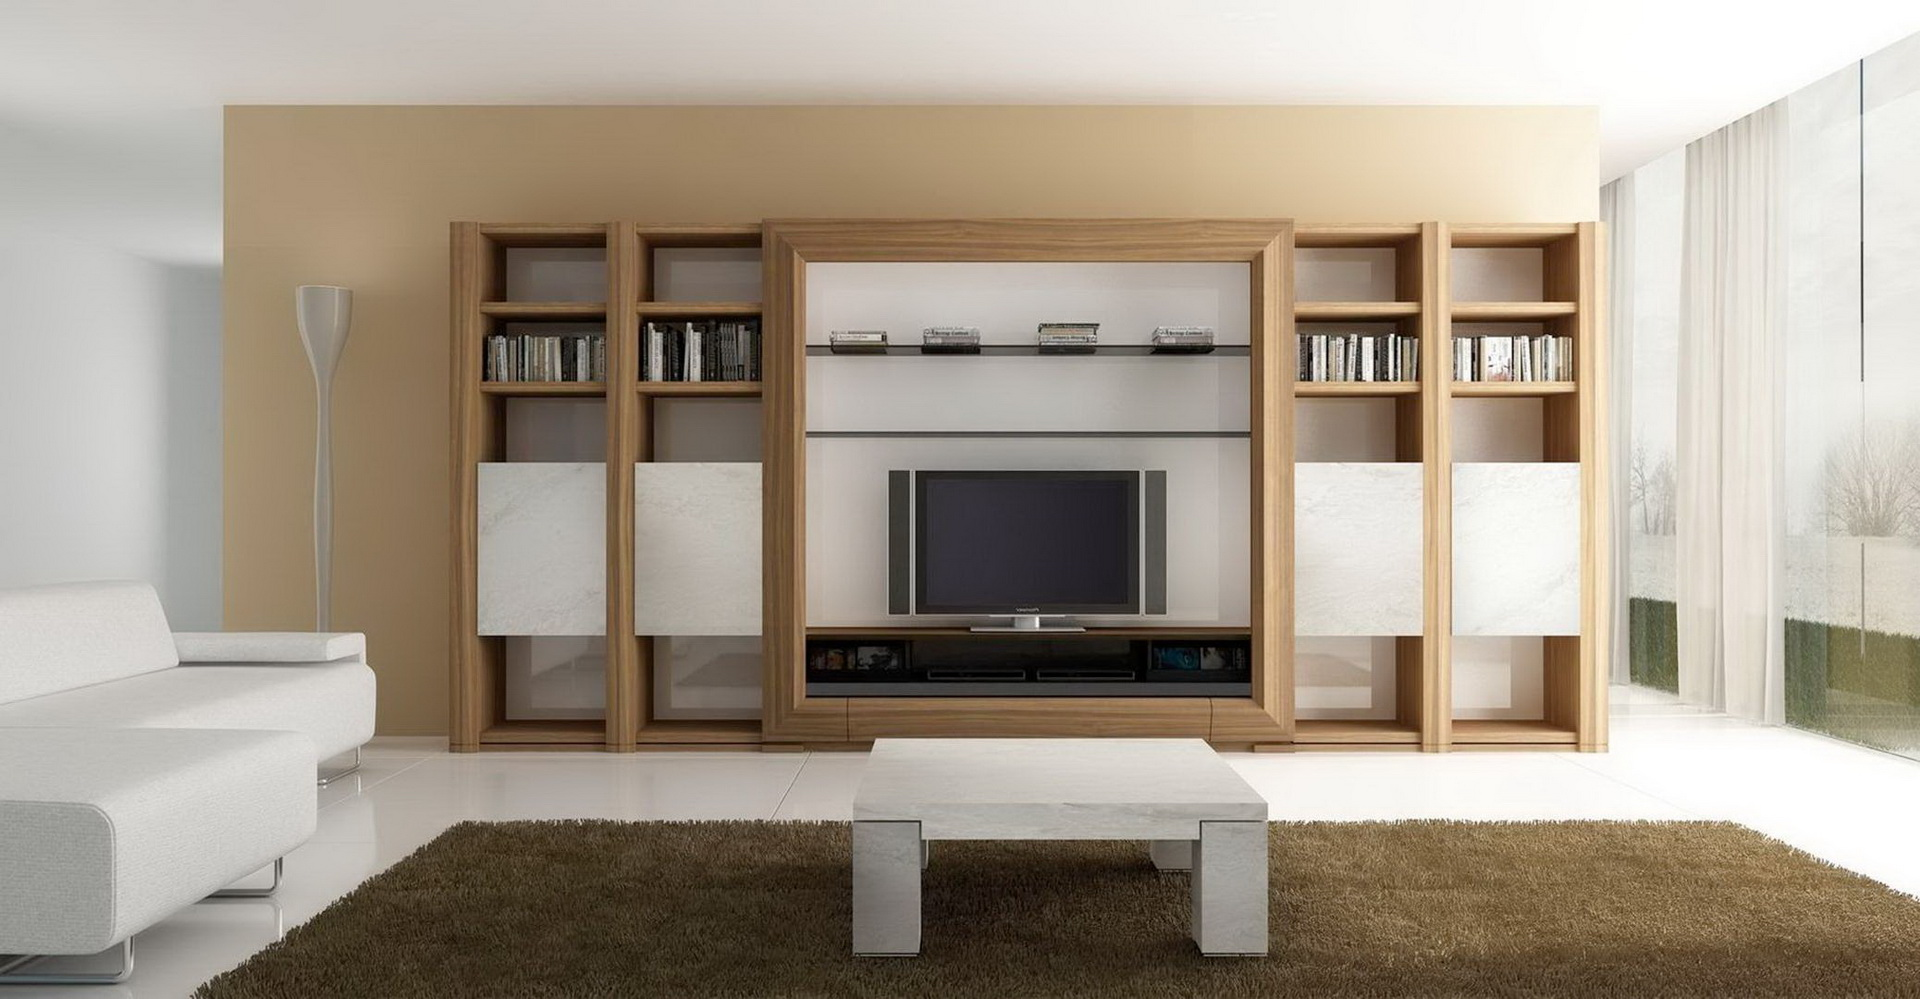 30 things you should know about Living room cabinets